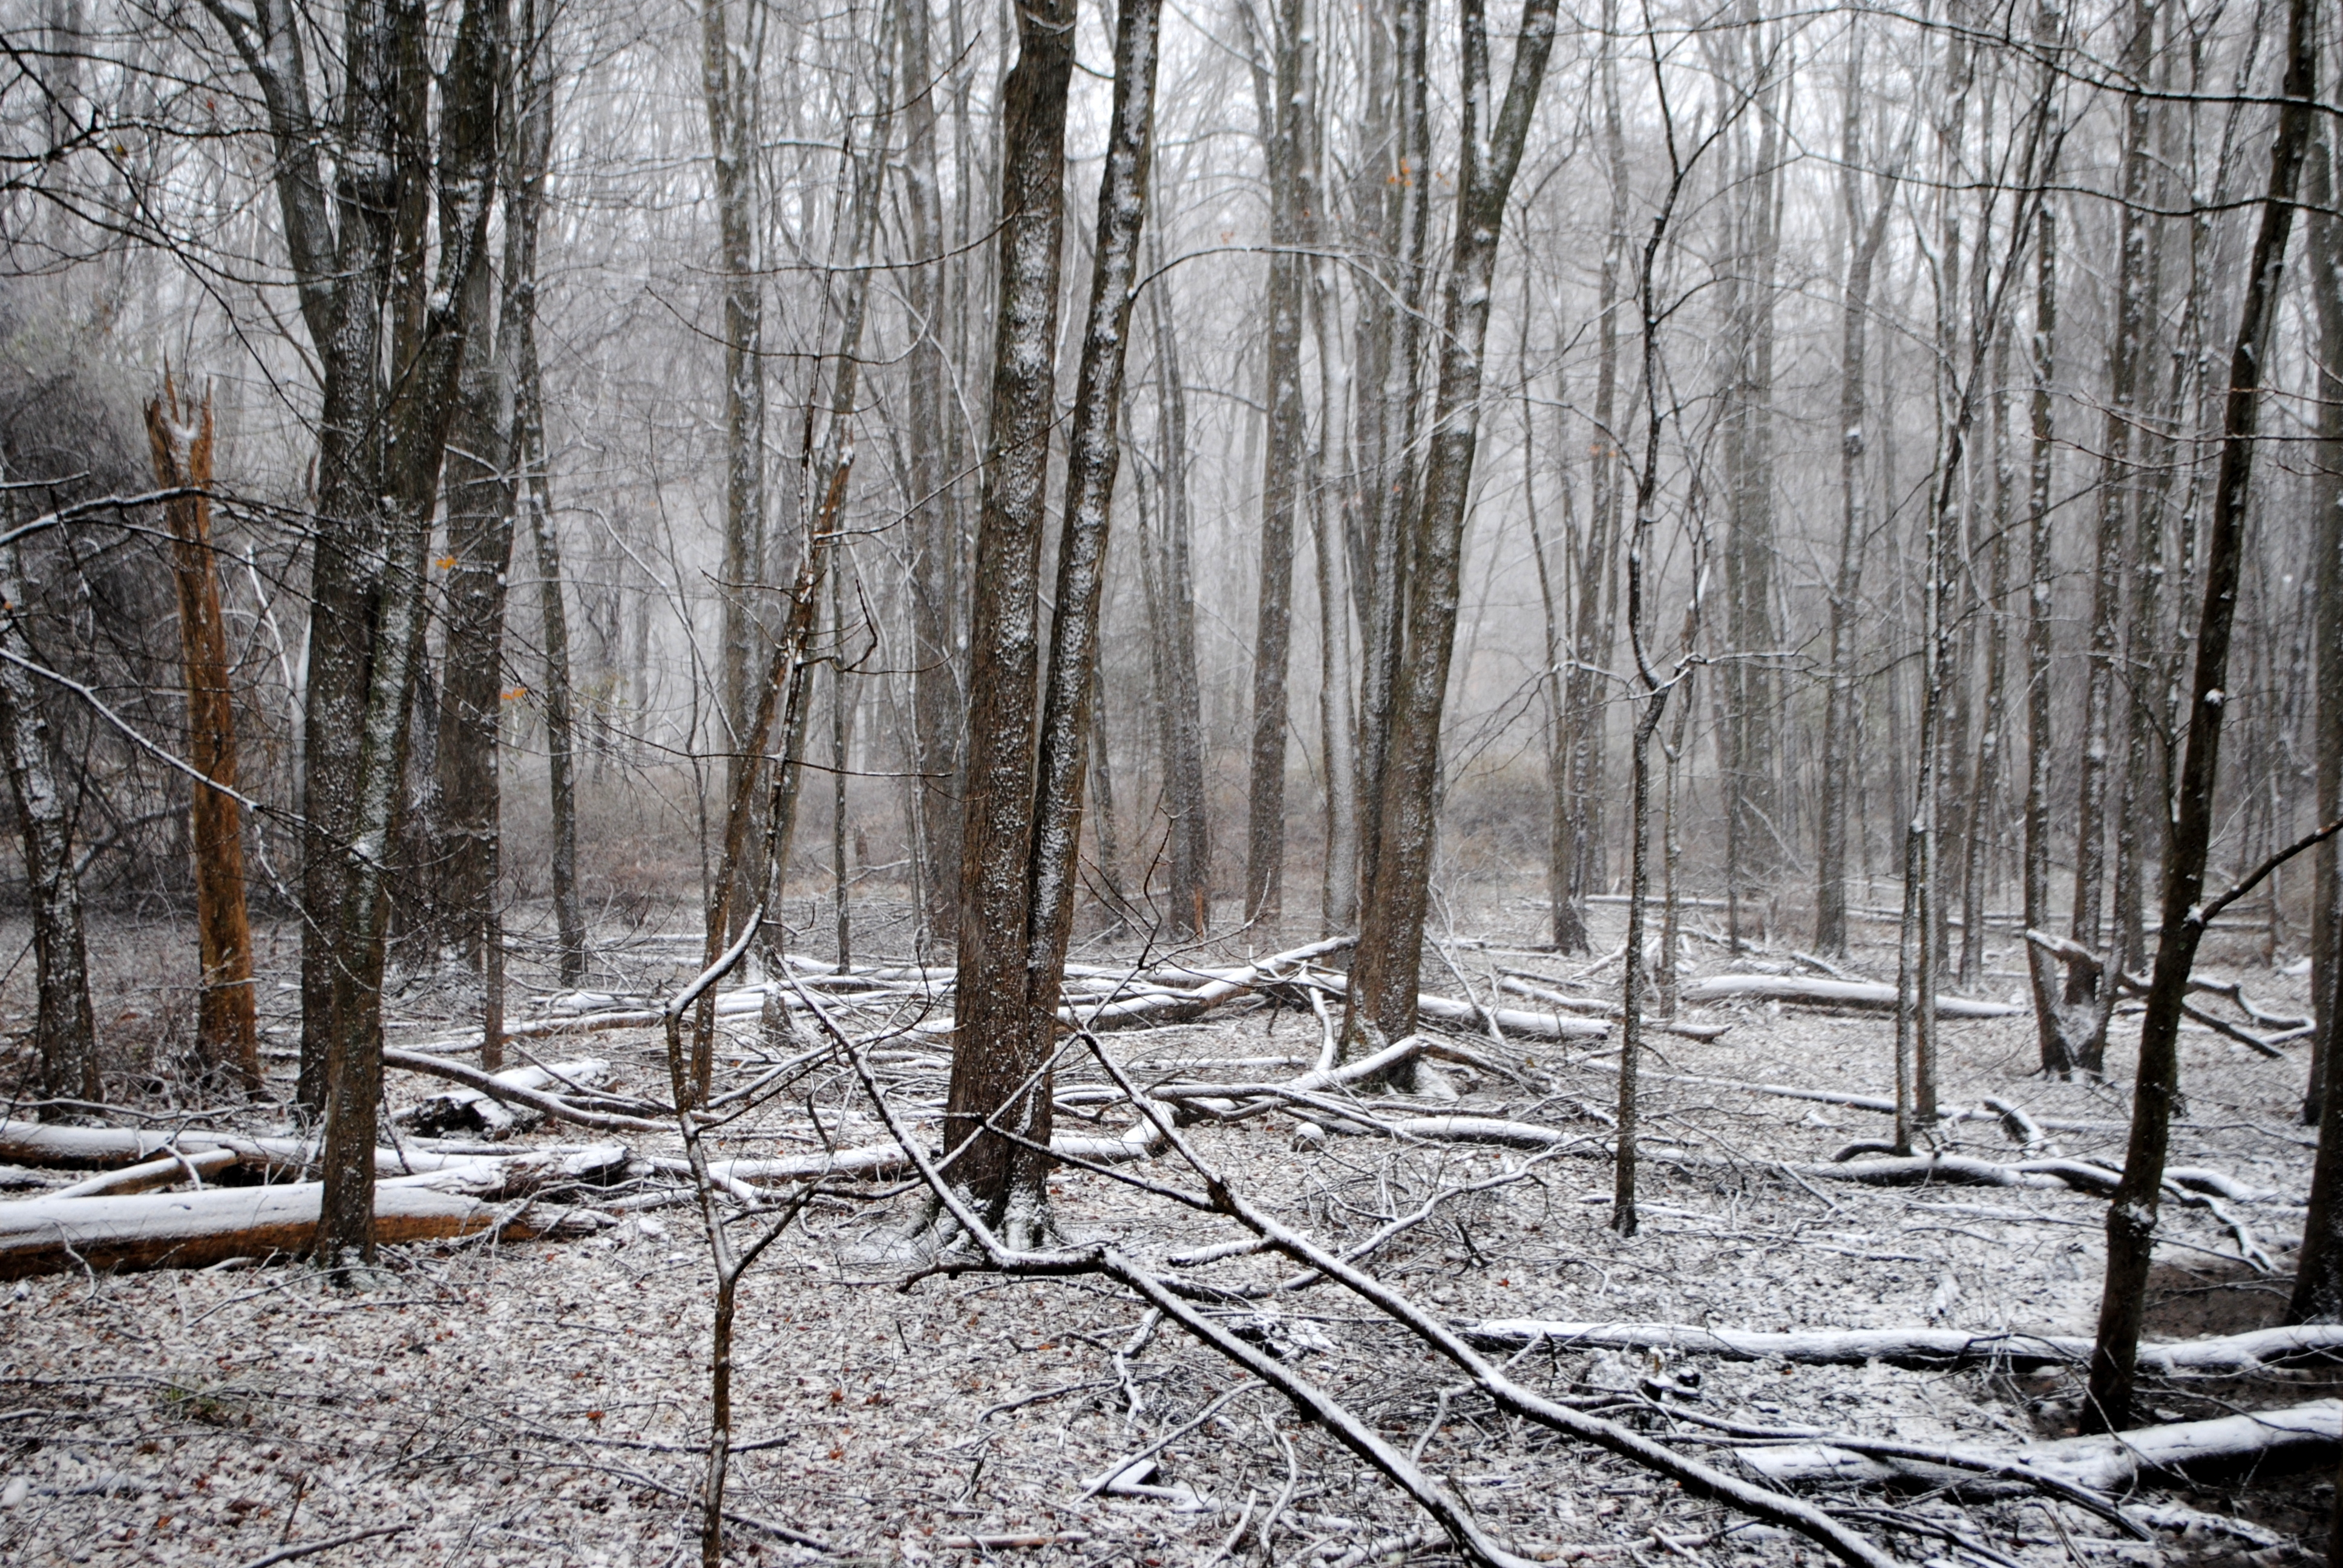 Ten days after Hurricane Sandy hit Cortlandt, snow began falling on downed trees in the woods off Maple Avenue.